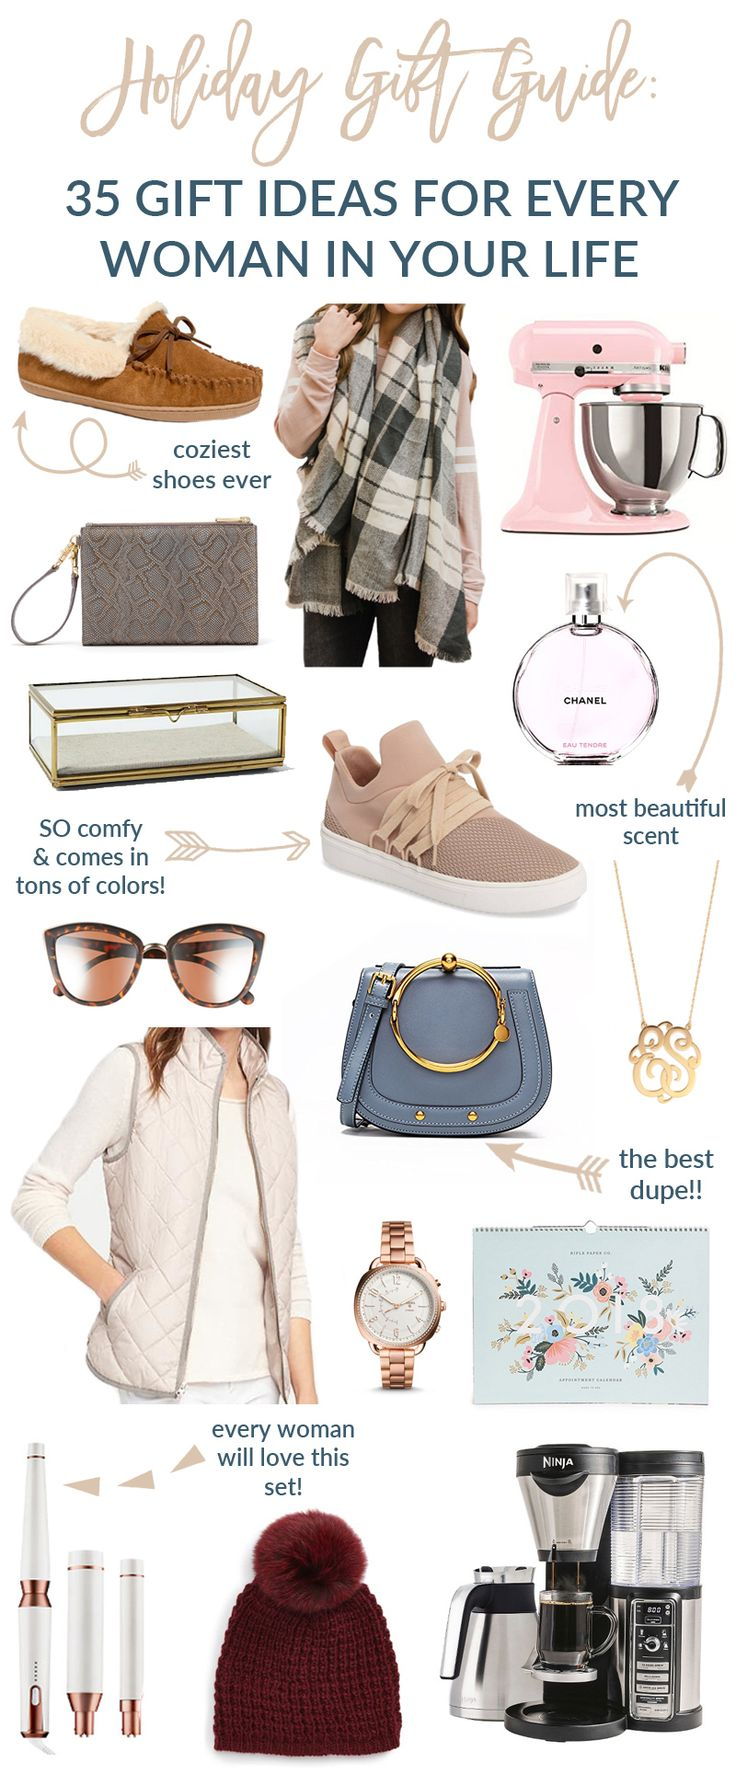 Popular fashion and lifestyle Utah blogger Sandy a la Mode shows 35 ideas in a holiday gift guide for every woman in your life!